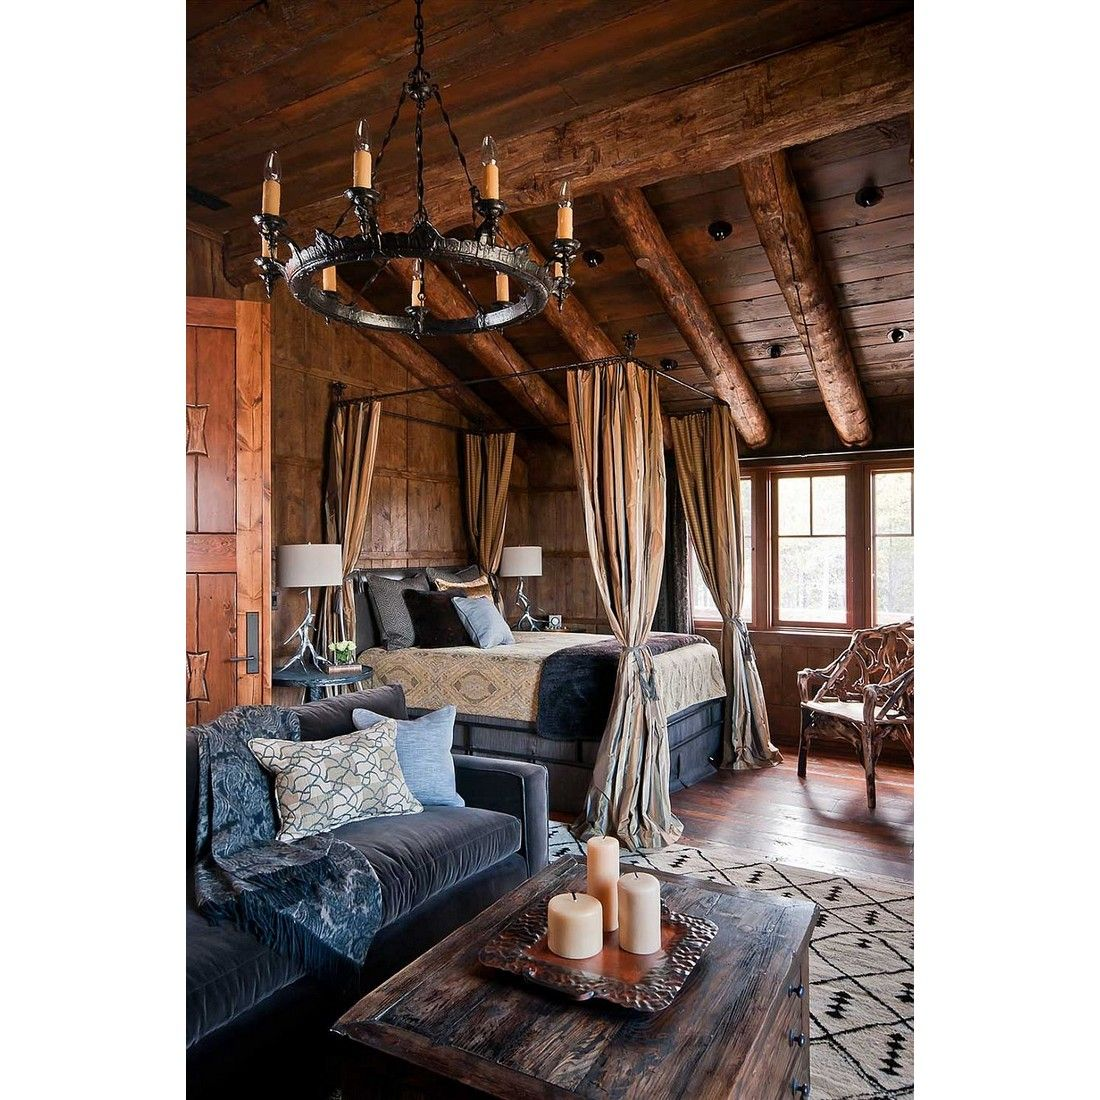 rustic log cabin bedroom with cozy canopy bed, yay or nay